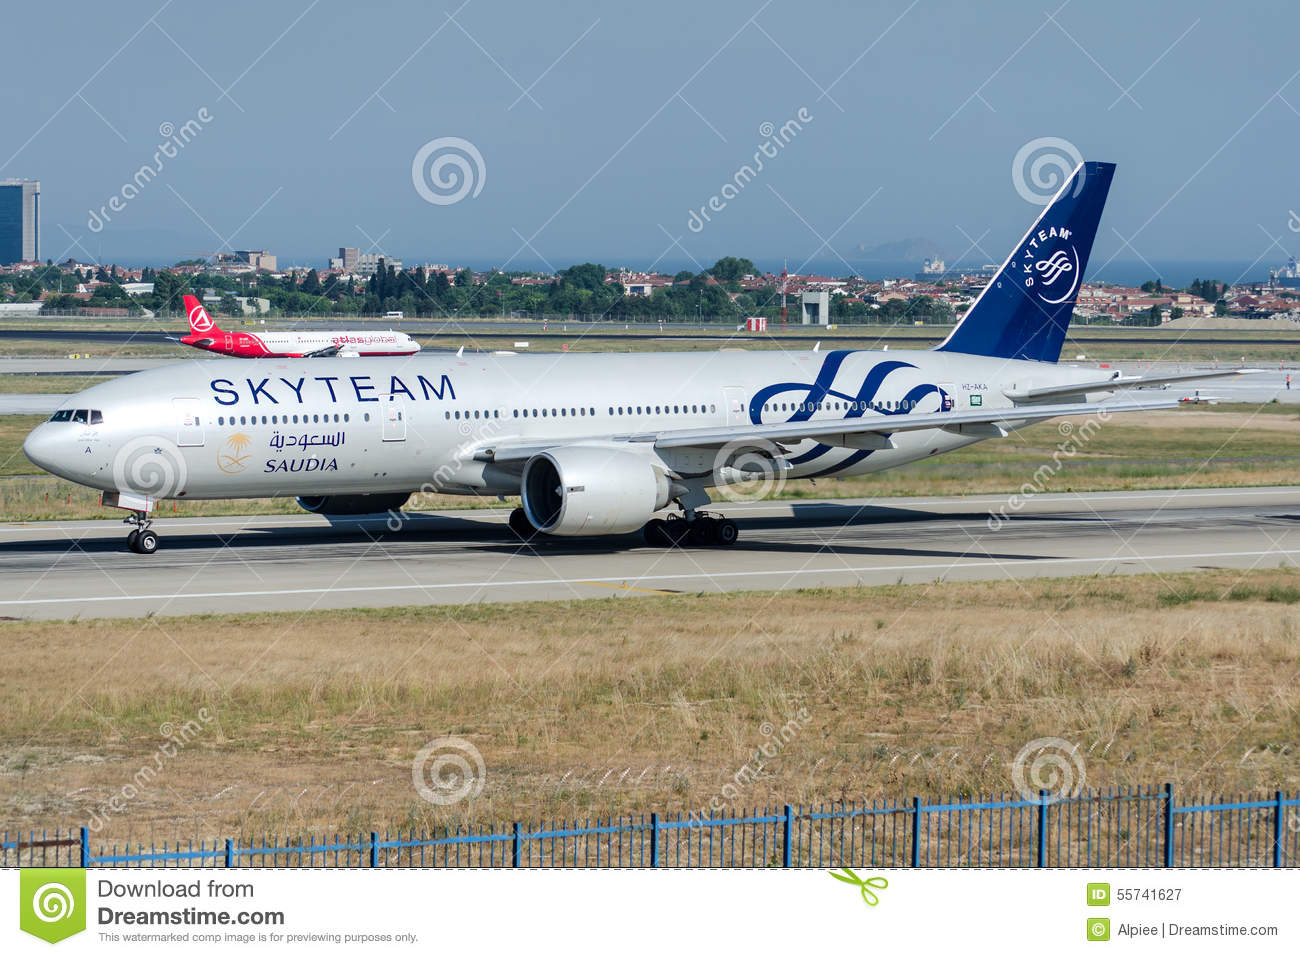 777 illustration skyteam